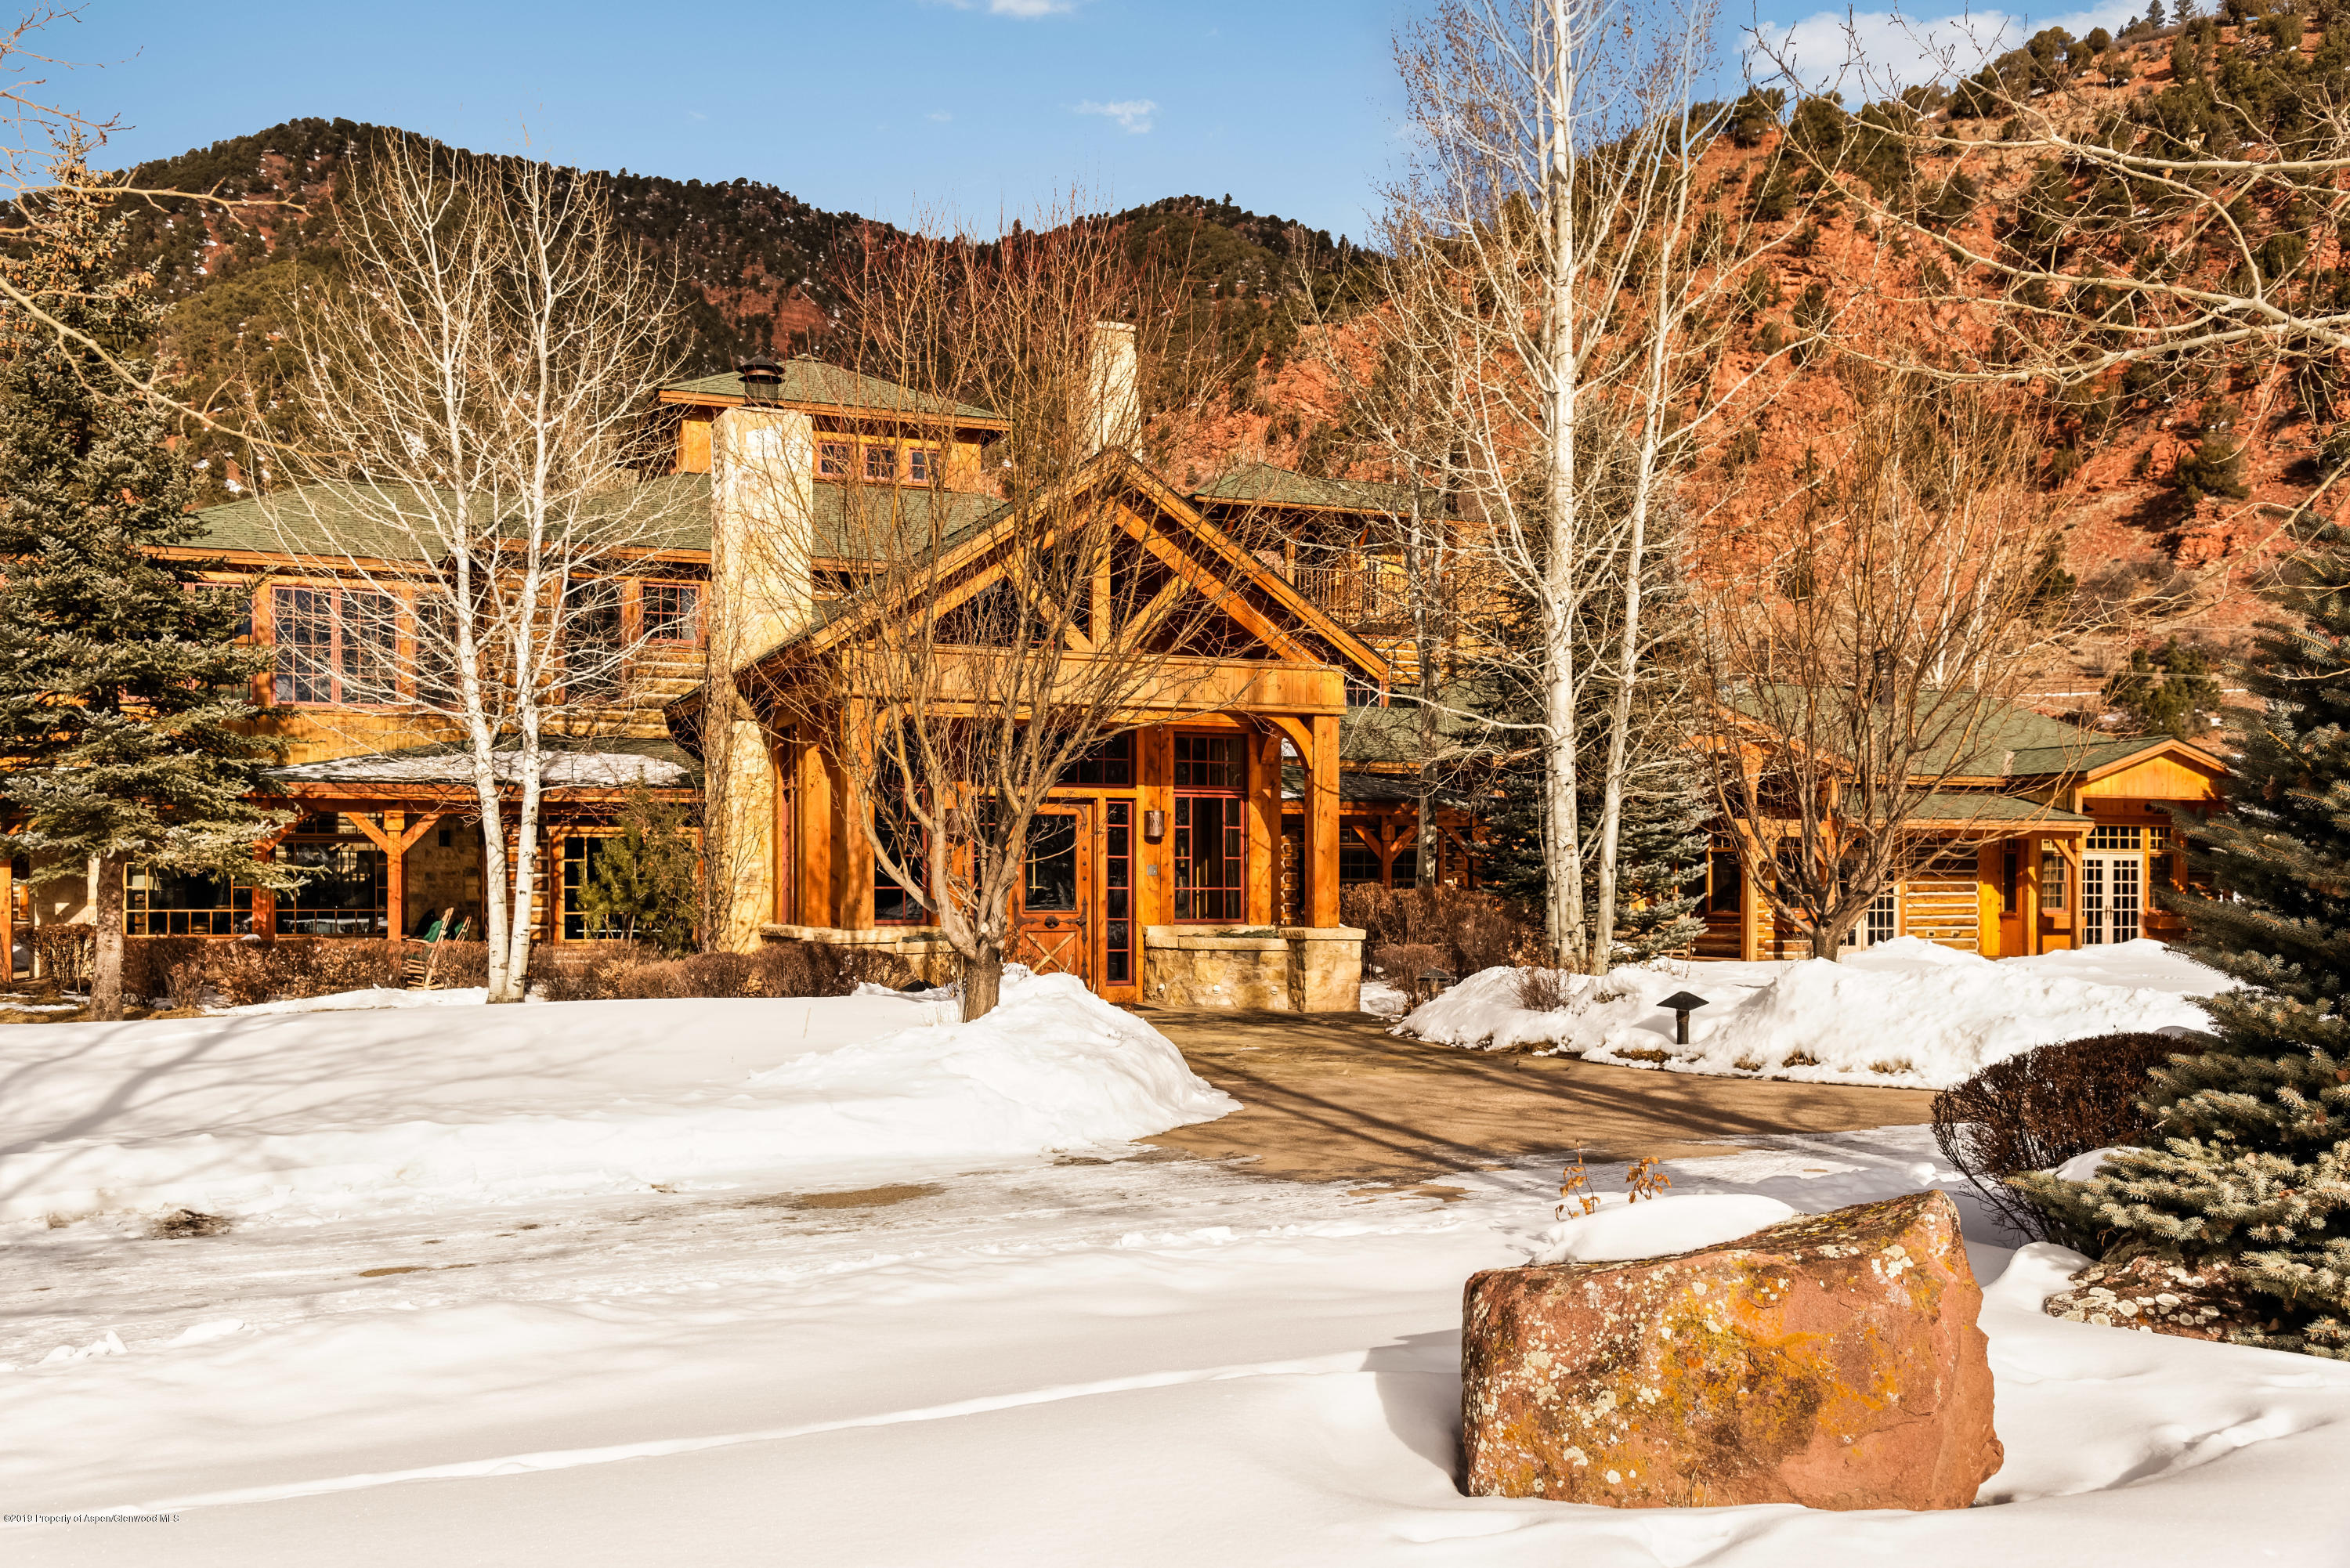 MLS# 135595 - 4 - 50 E River Ranch Road, Snowmass, CO 81654